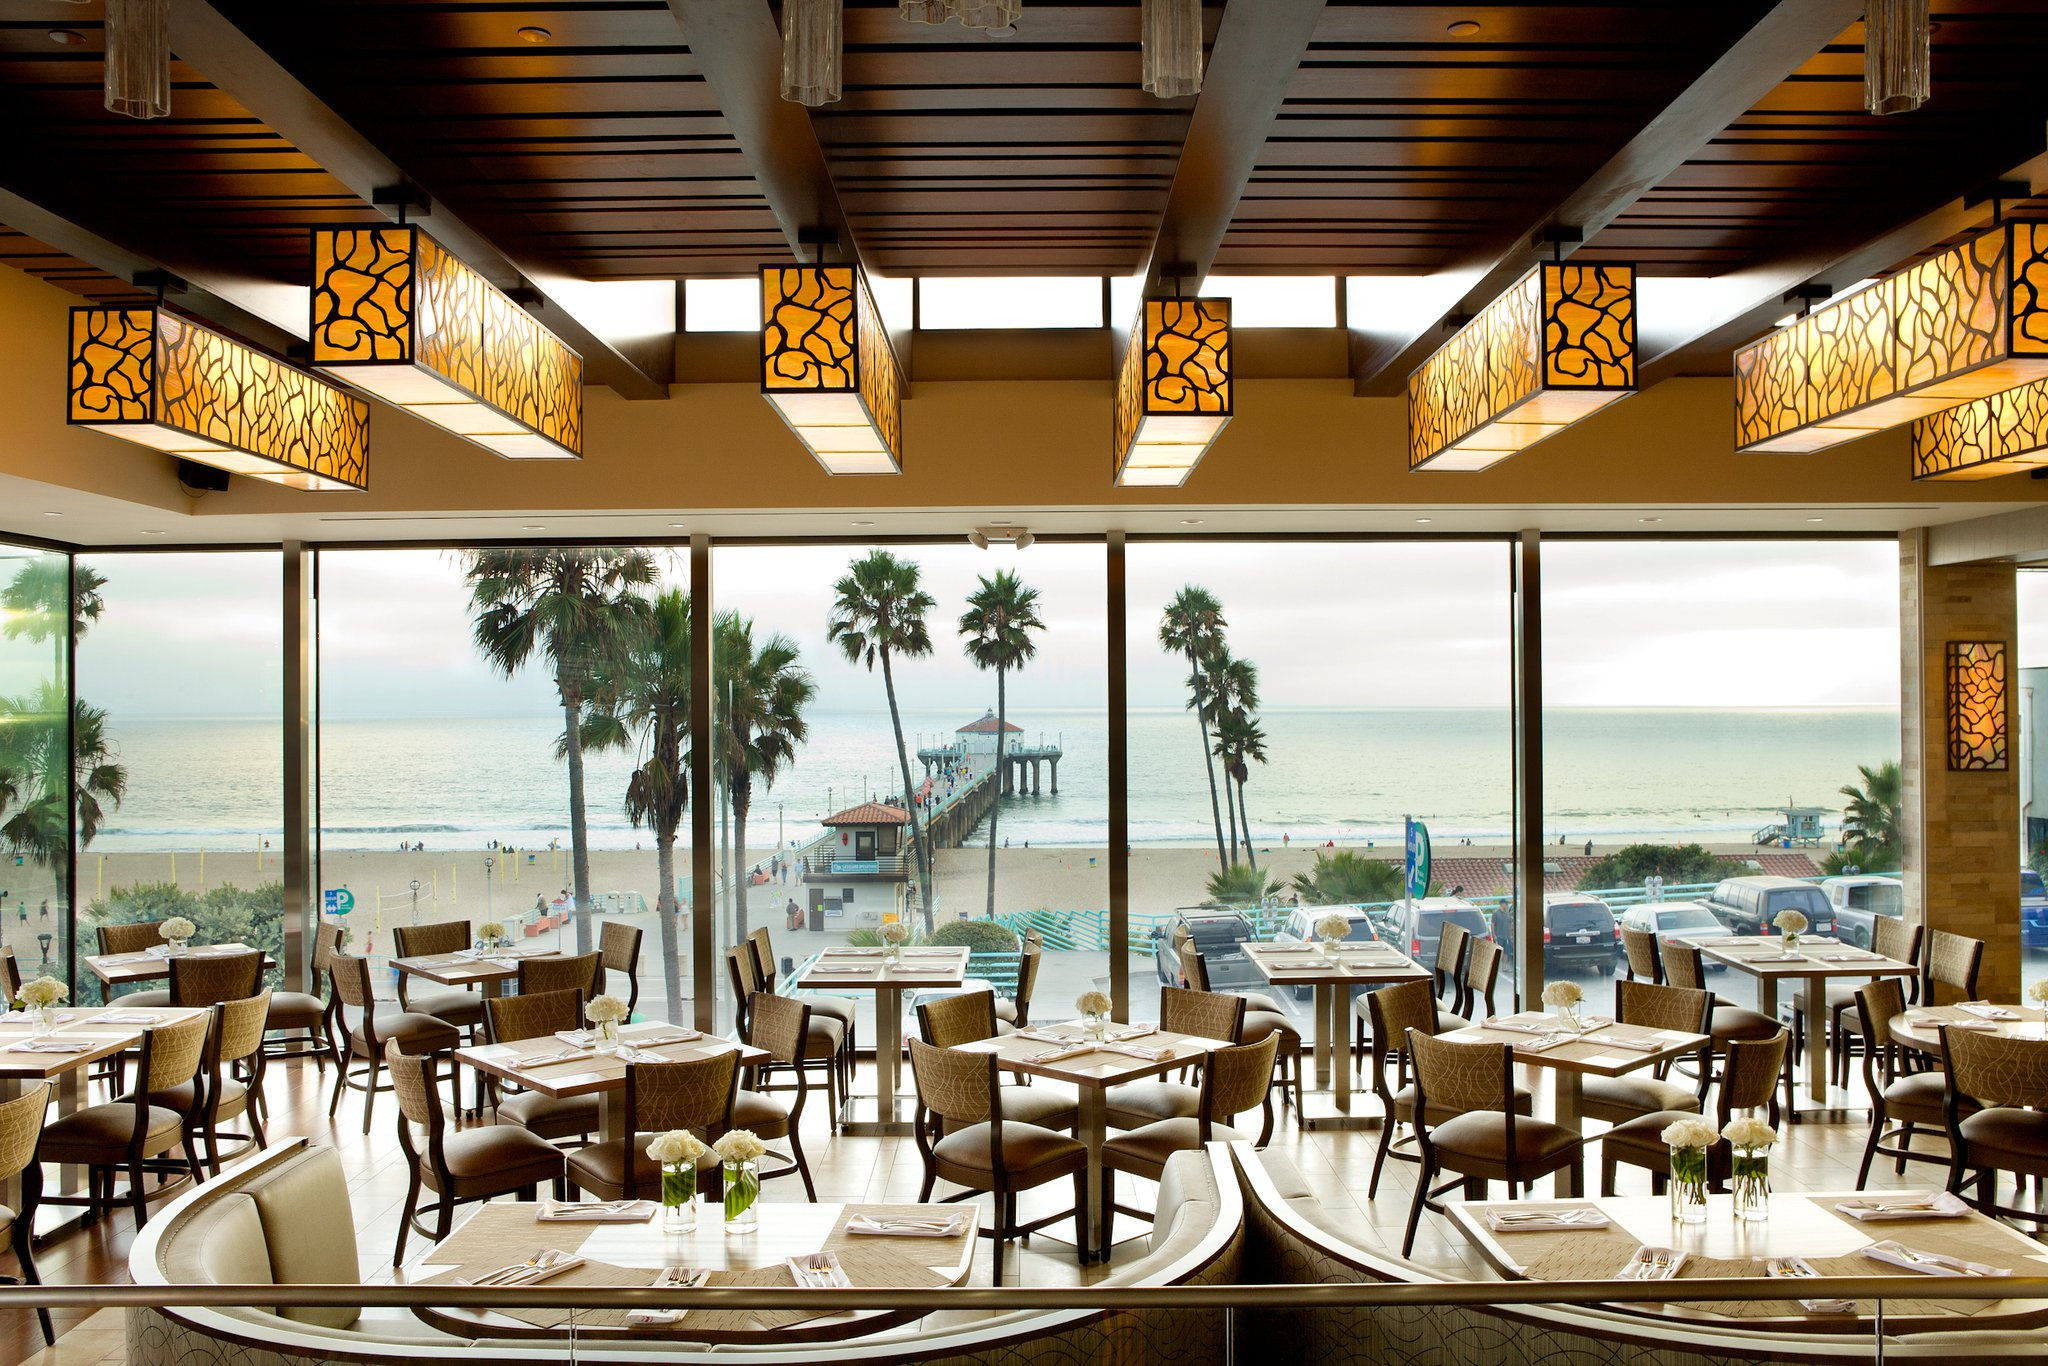 Fancy Restaurants In Long Beach Ca